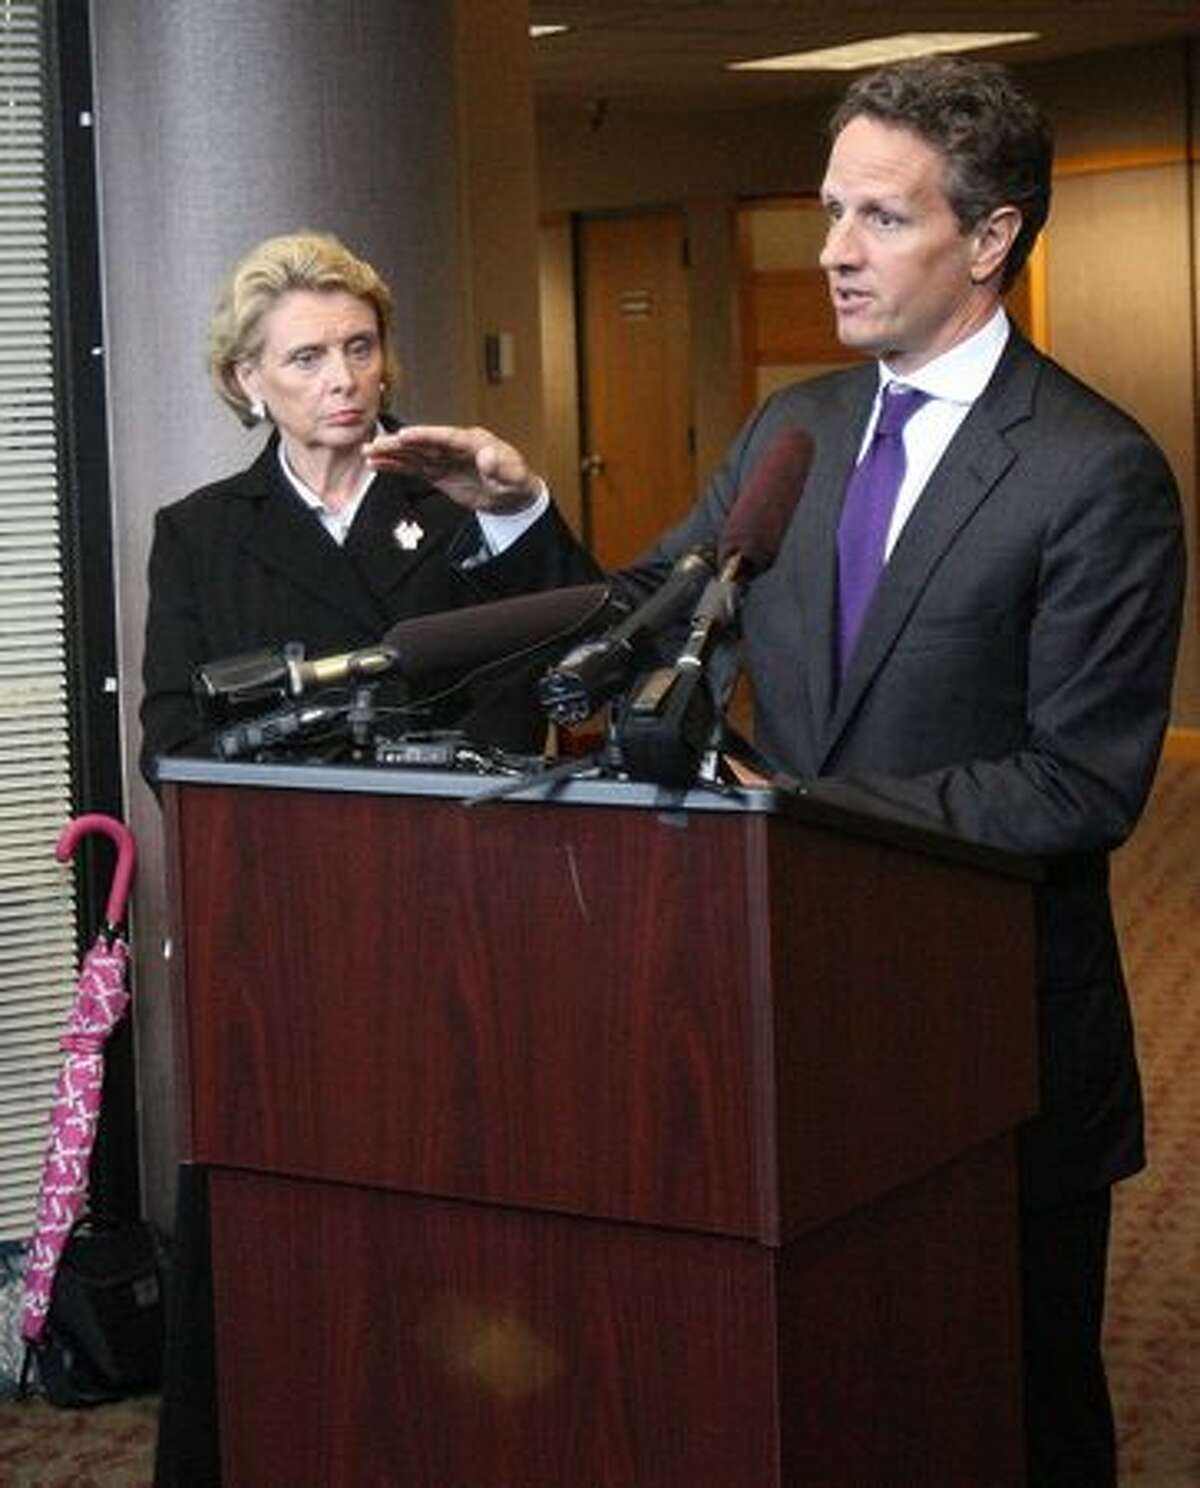 Treasury Secretary Tim Geithner talks about trade at the Port of Tacoma while Washington Gov. Chris Gregoire listens.